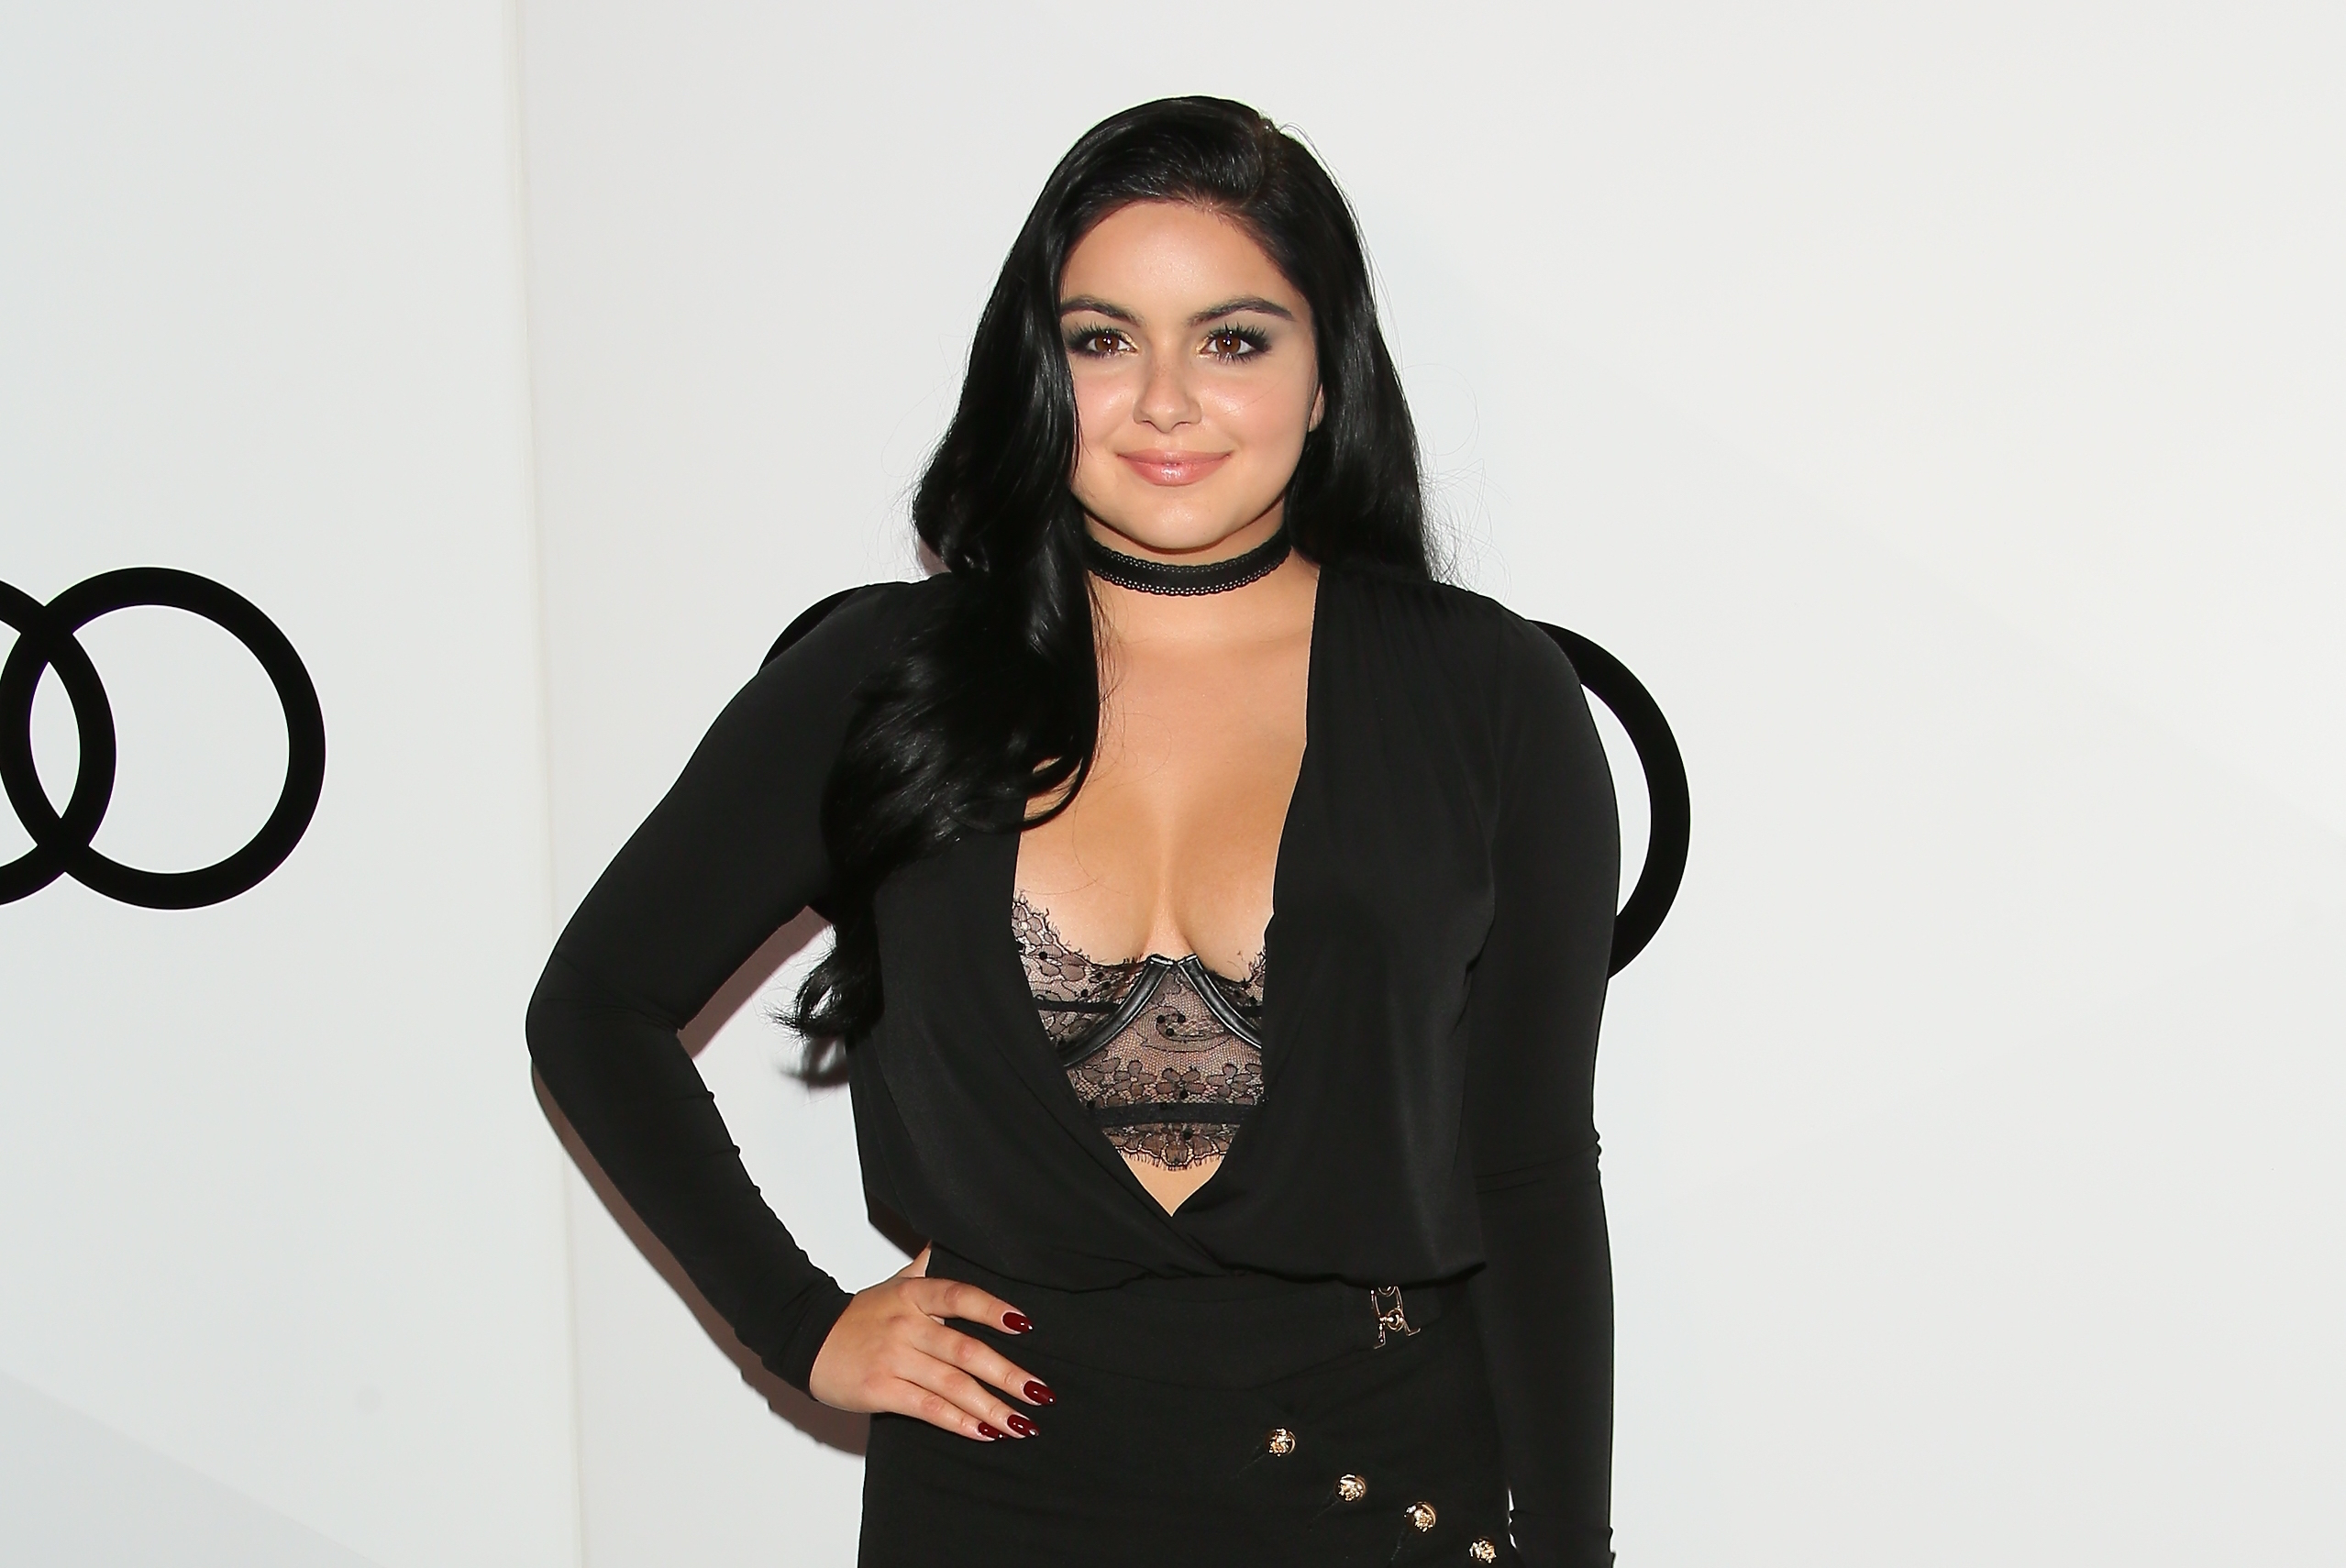 Ariel Winter just rocked a '90s trend we've been missing like crazy